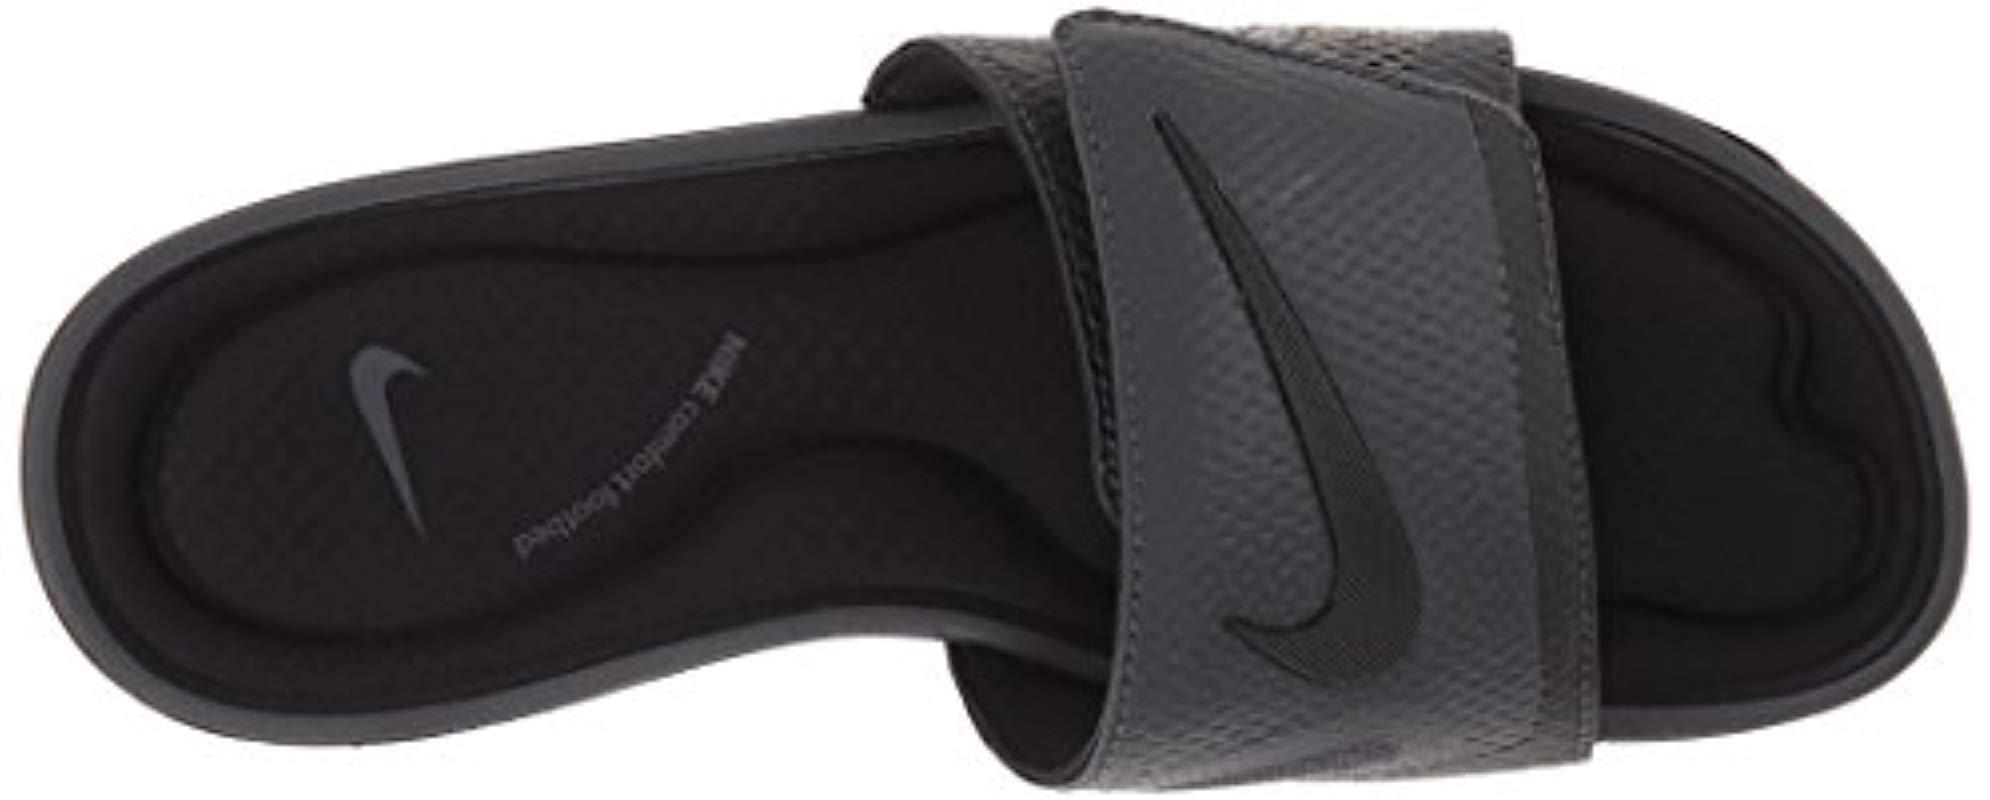 4a72aa982bf4 Nike - Black Solarsoft Comfort Slide Sandal for Men - Lyst. View fullscreen